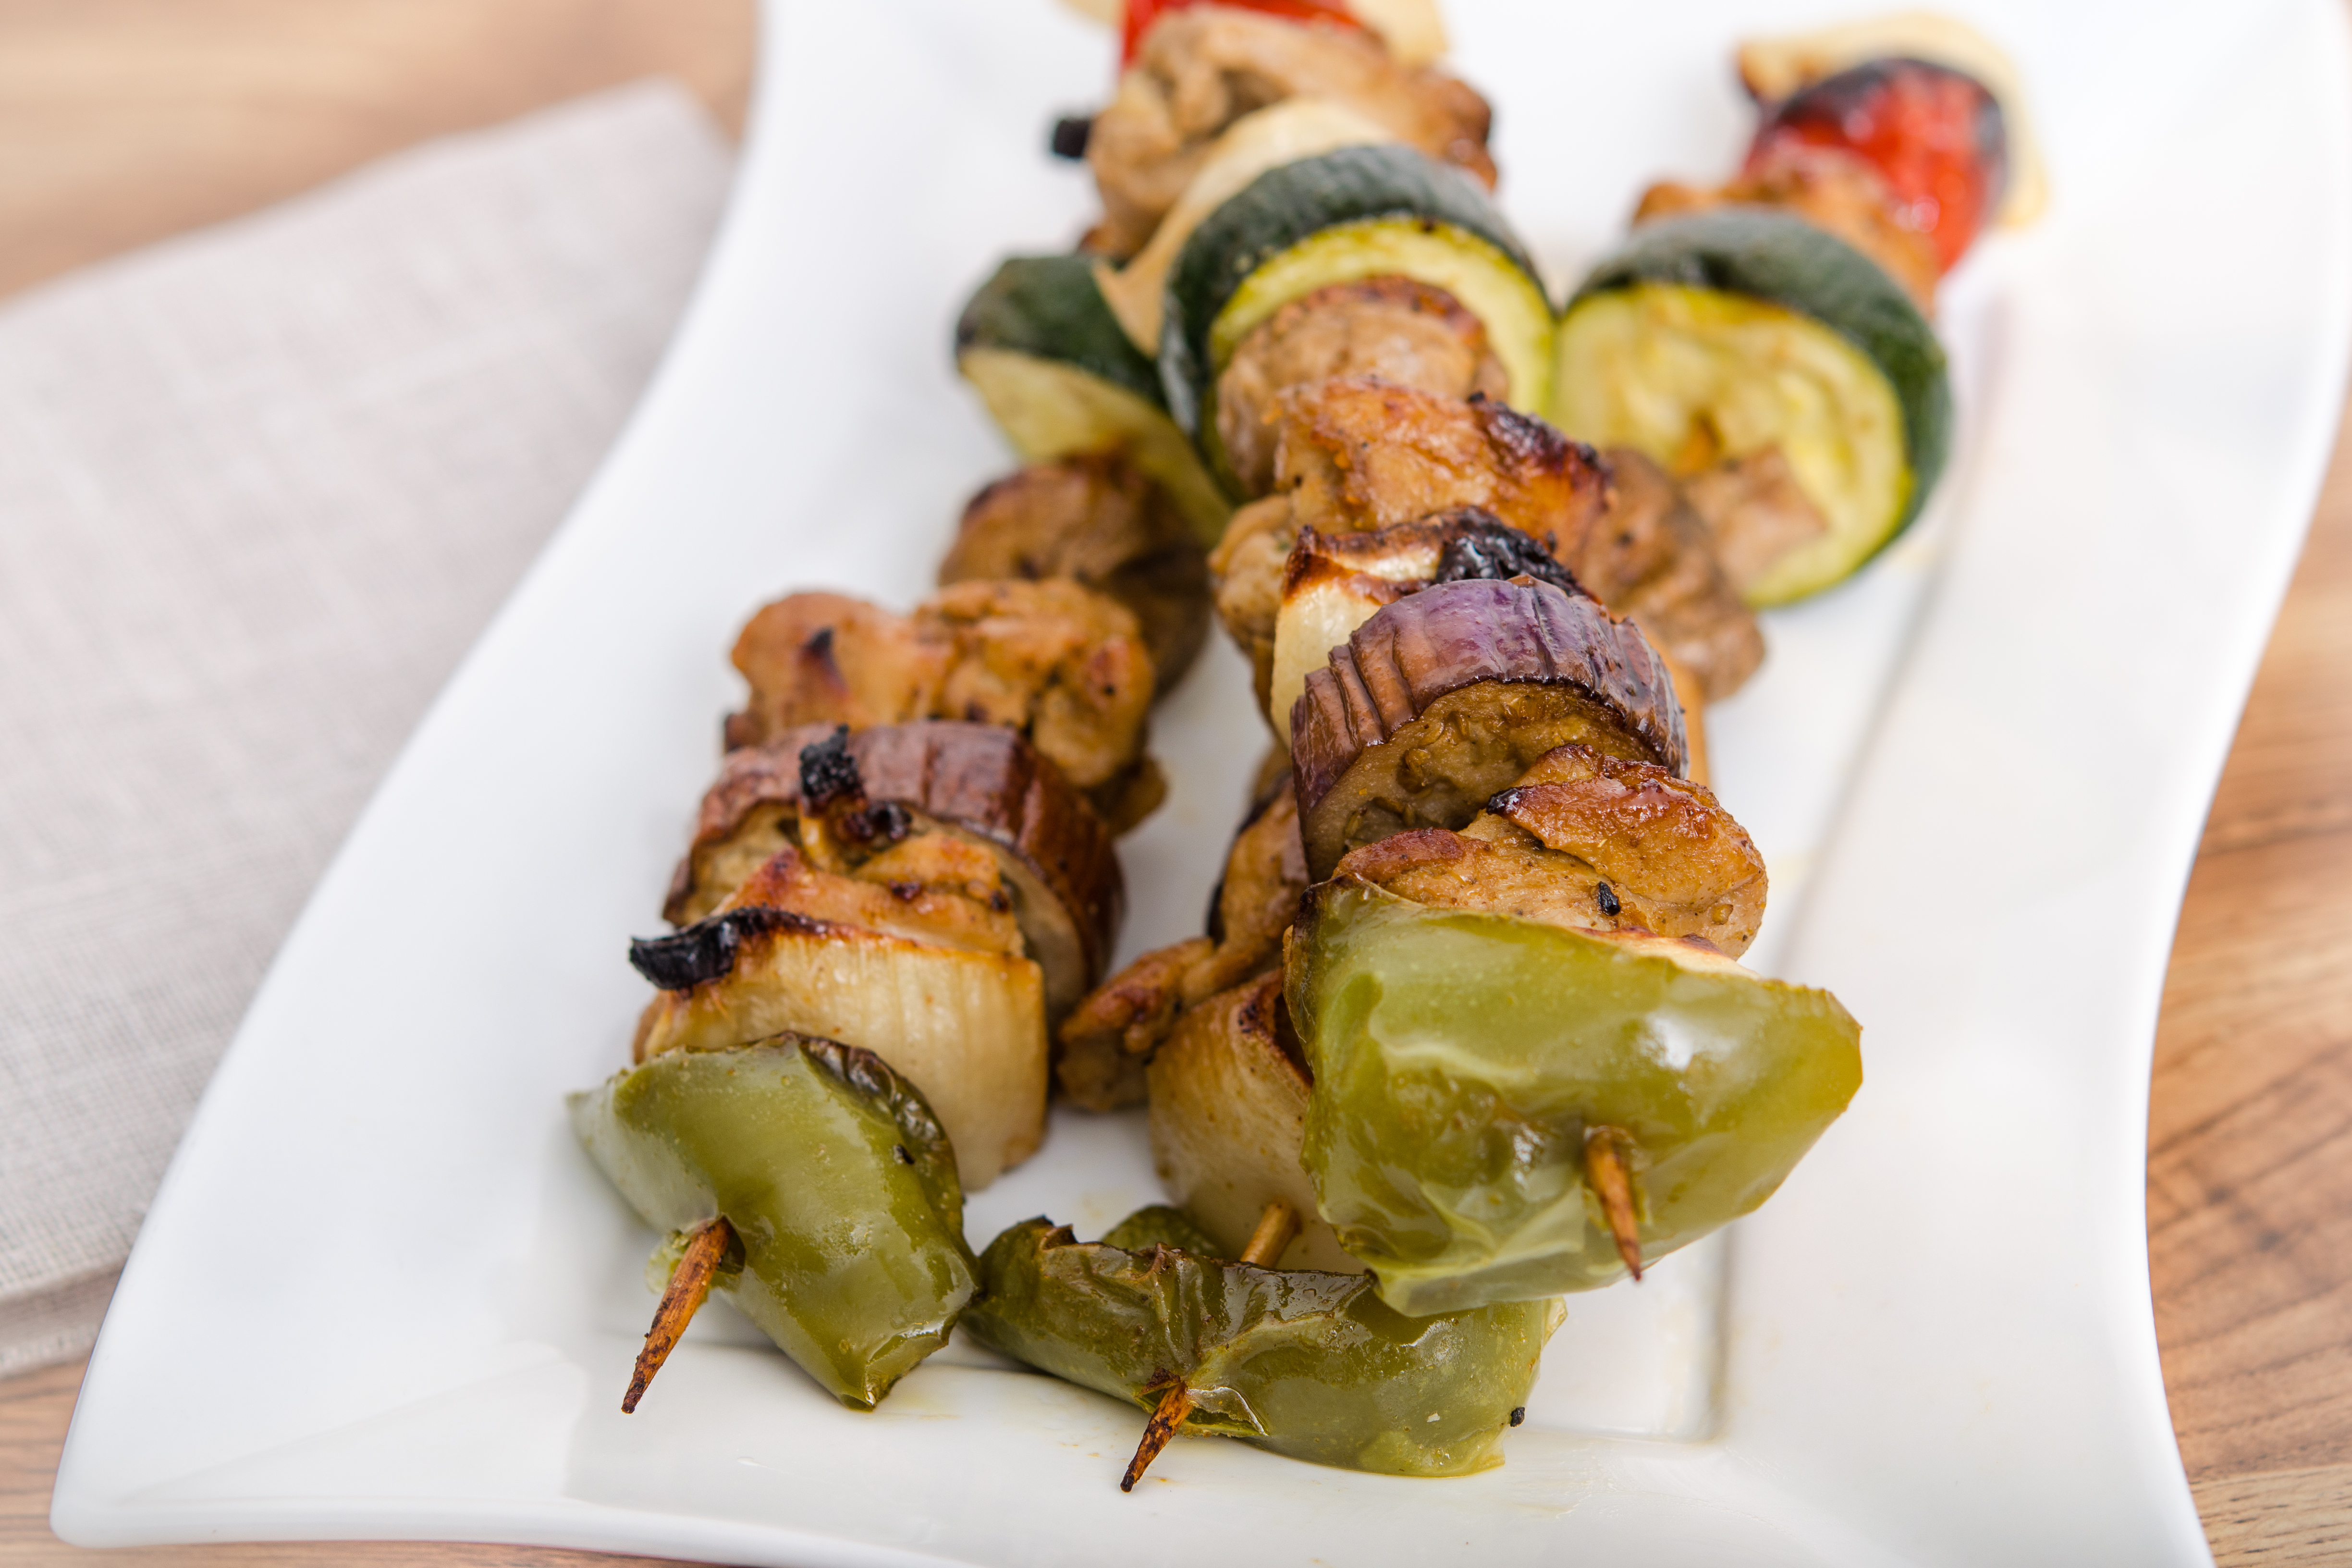 How long do i grill chicken kabobs - How Long Do I Grill Chicken Kabobs 29